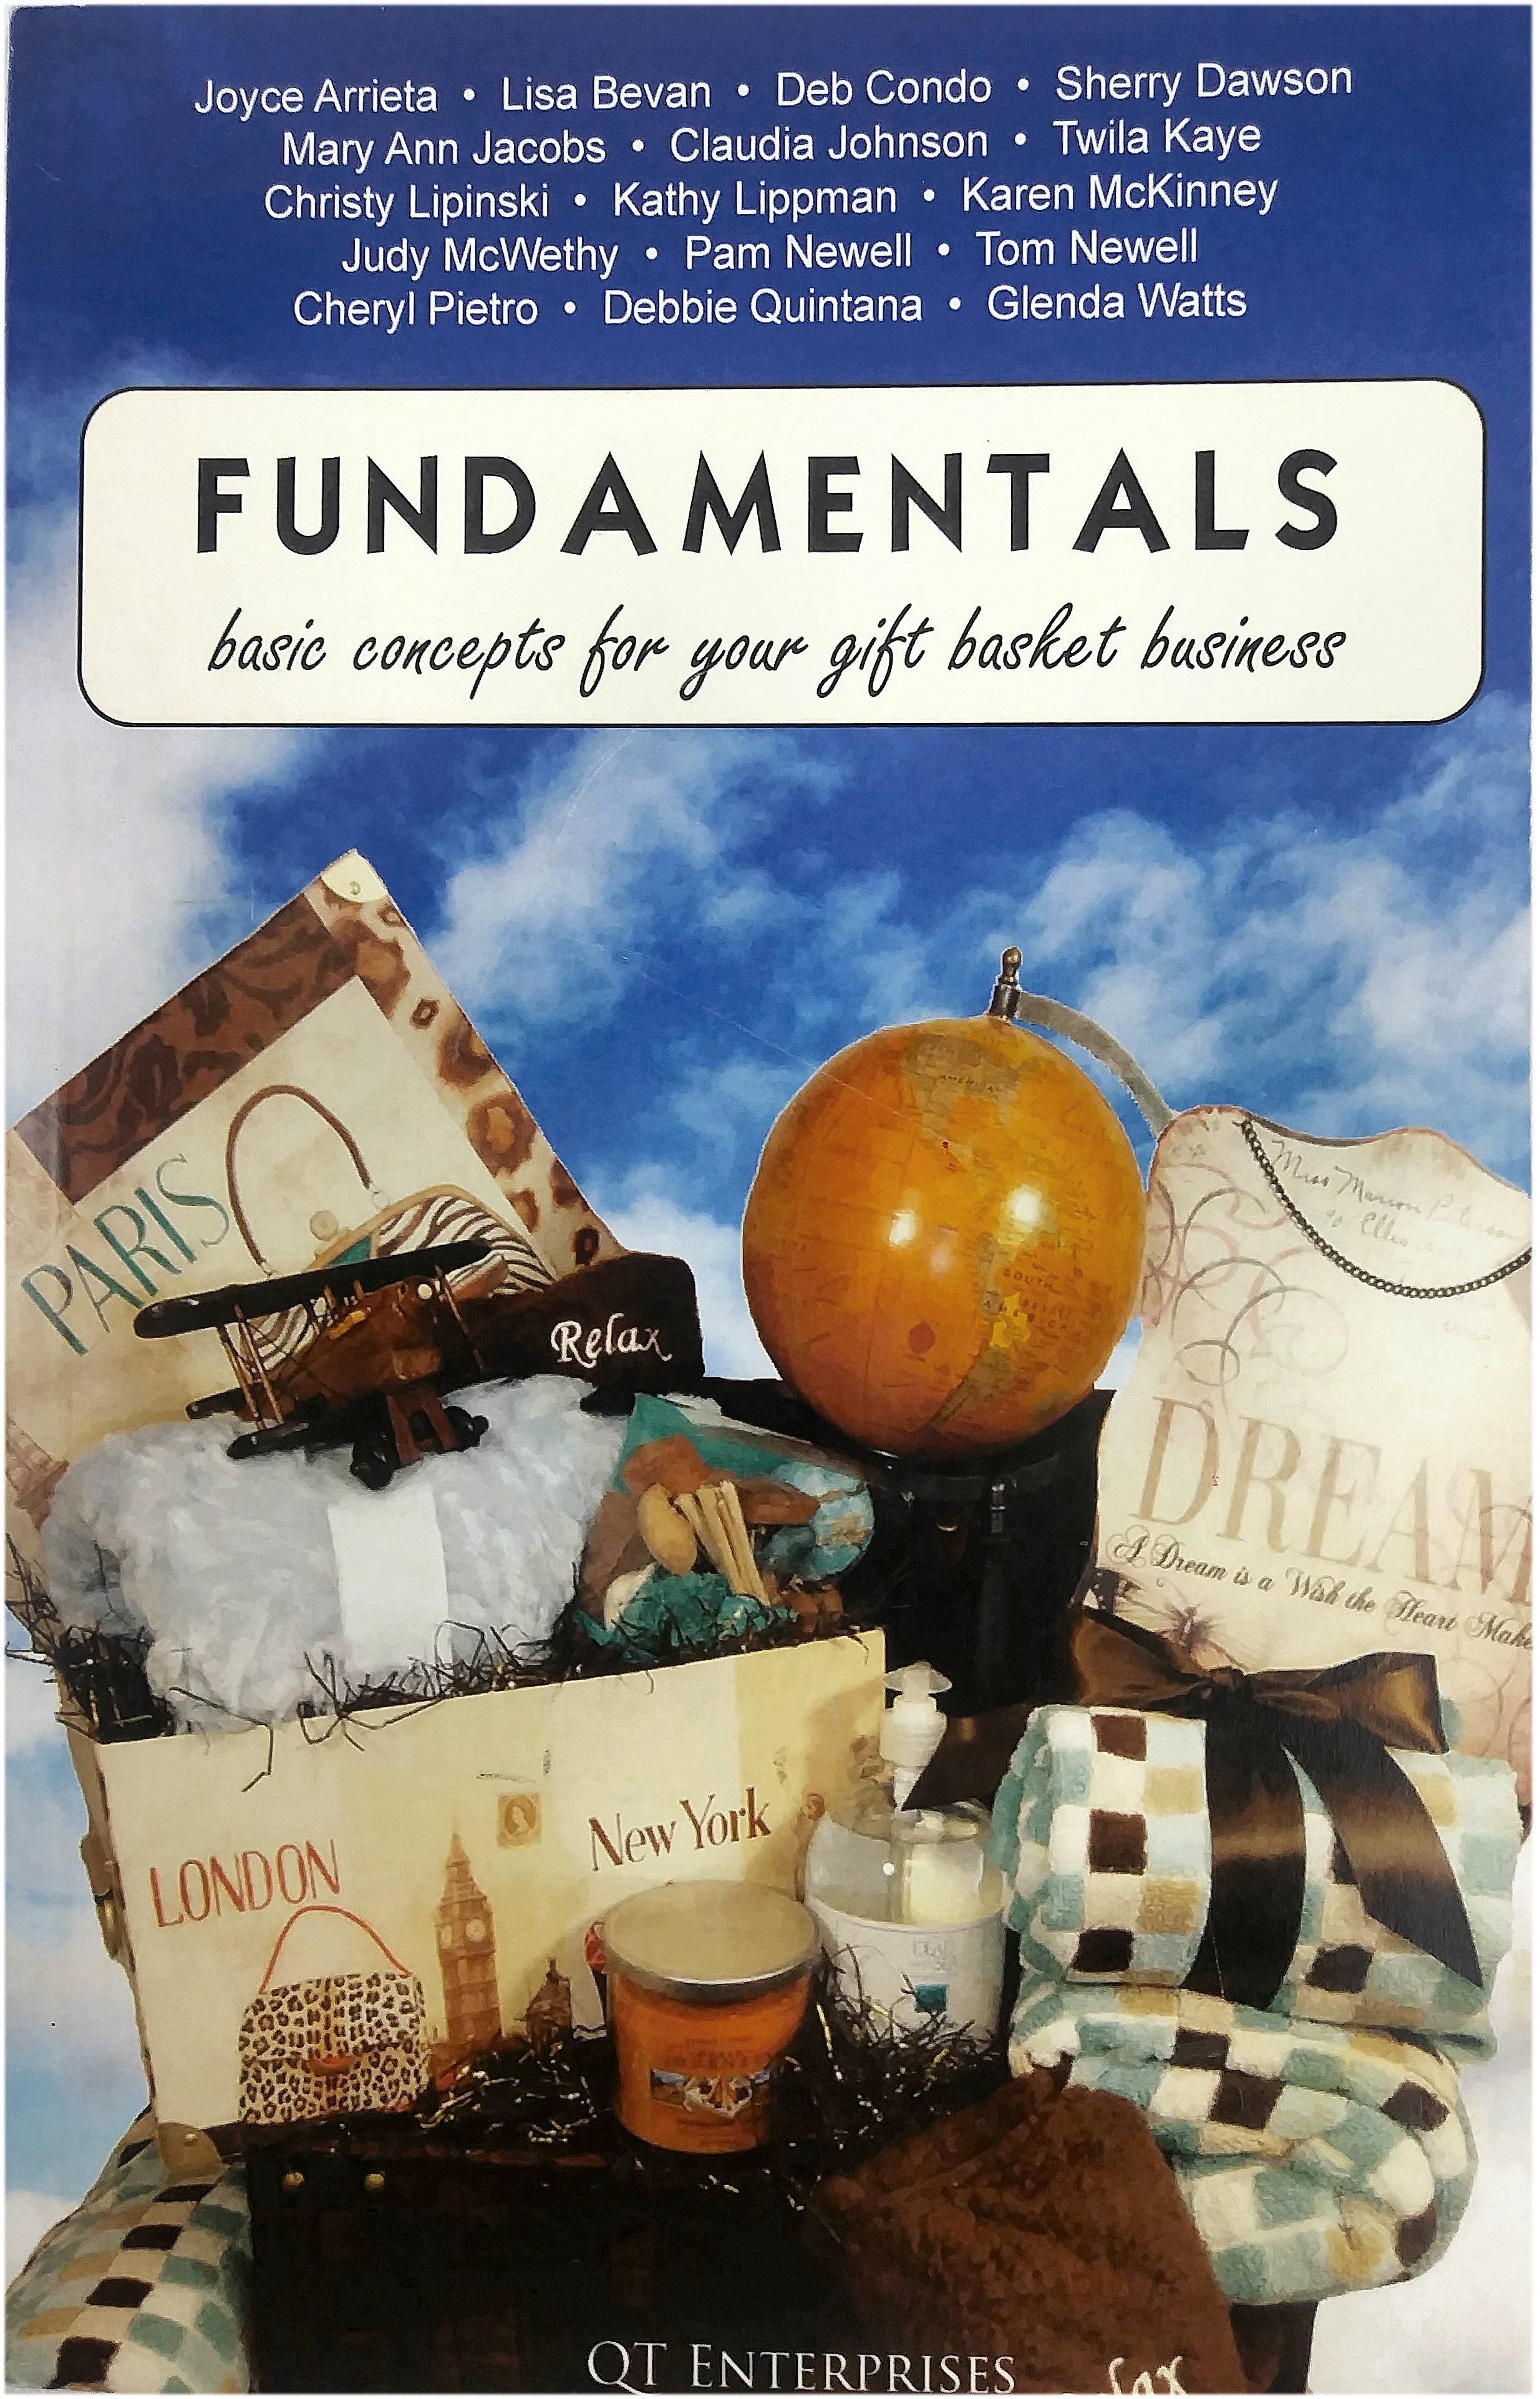 fundamentals-basic-concepts-for-your-gift-basket-business.jpg